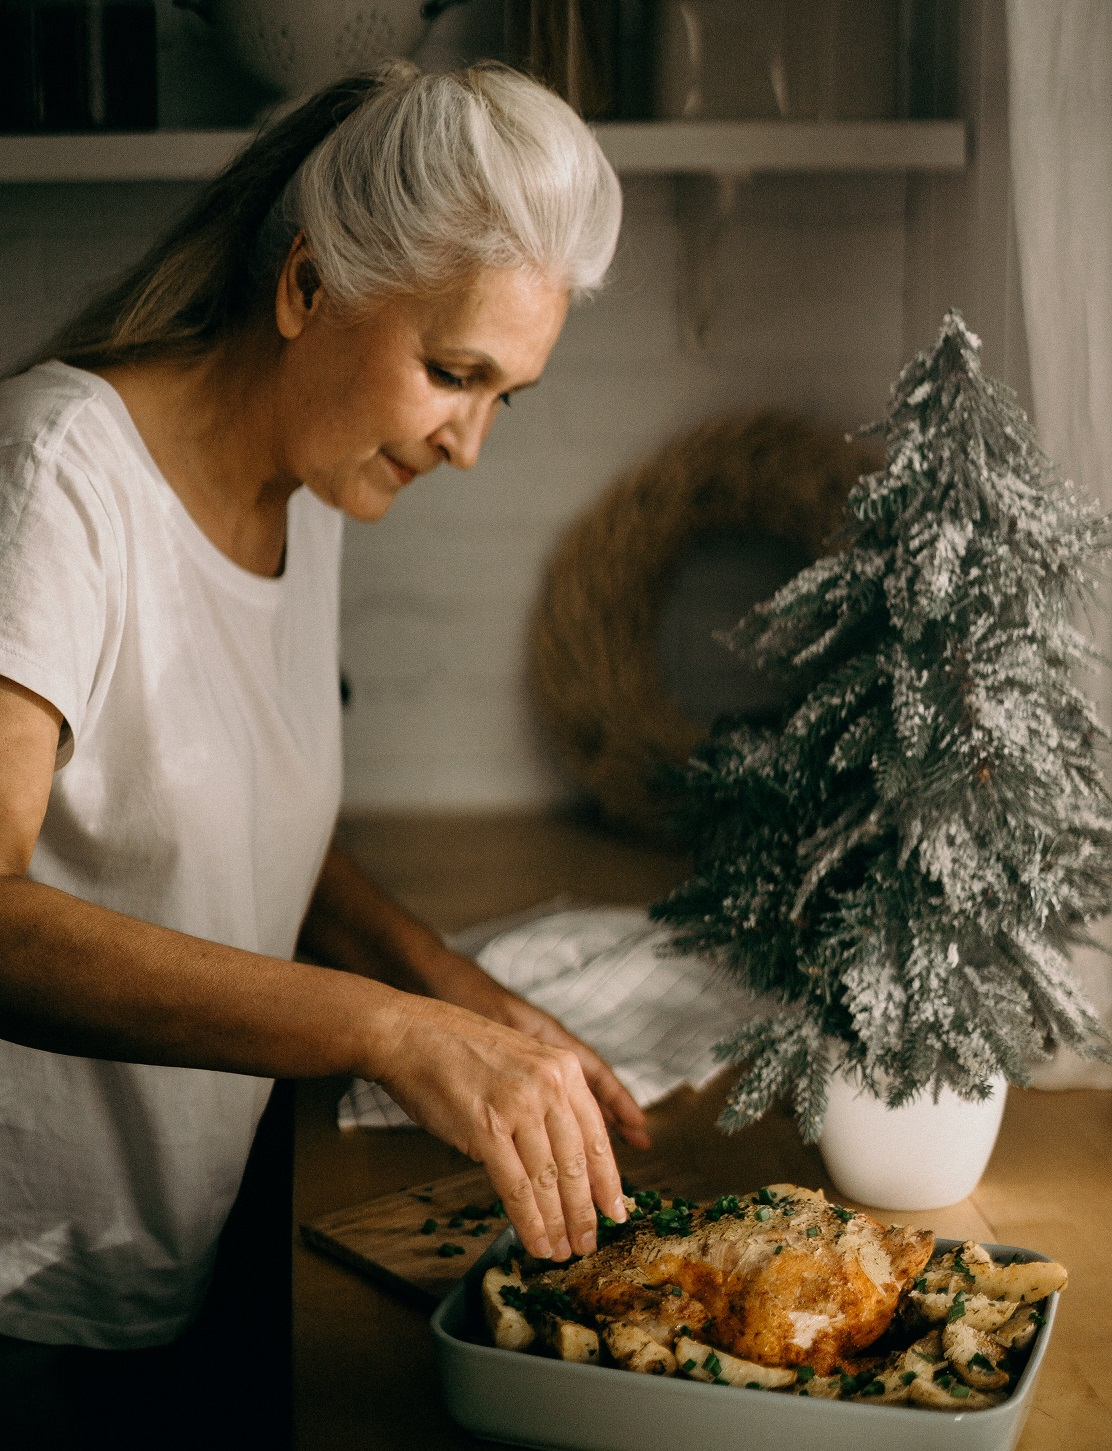 Caring for someone with dementia at Christmas